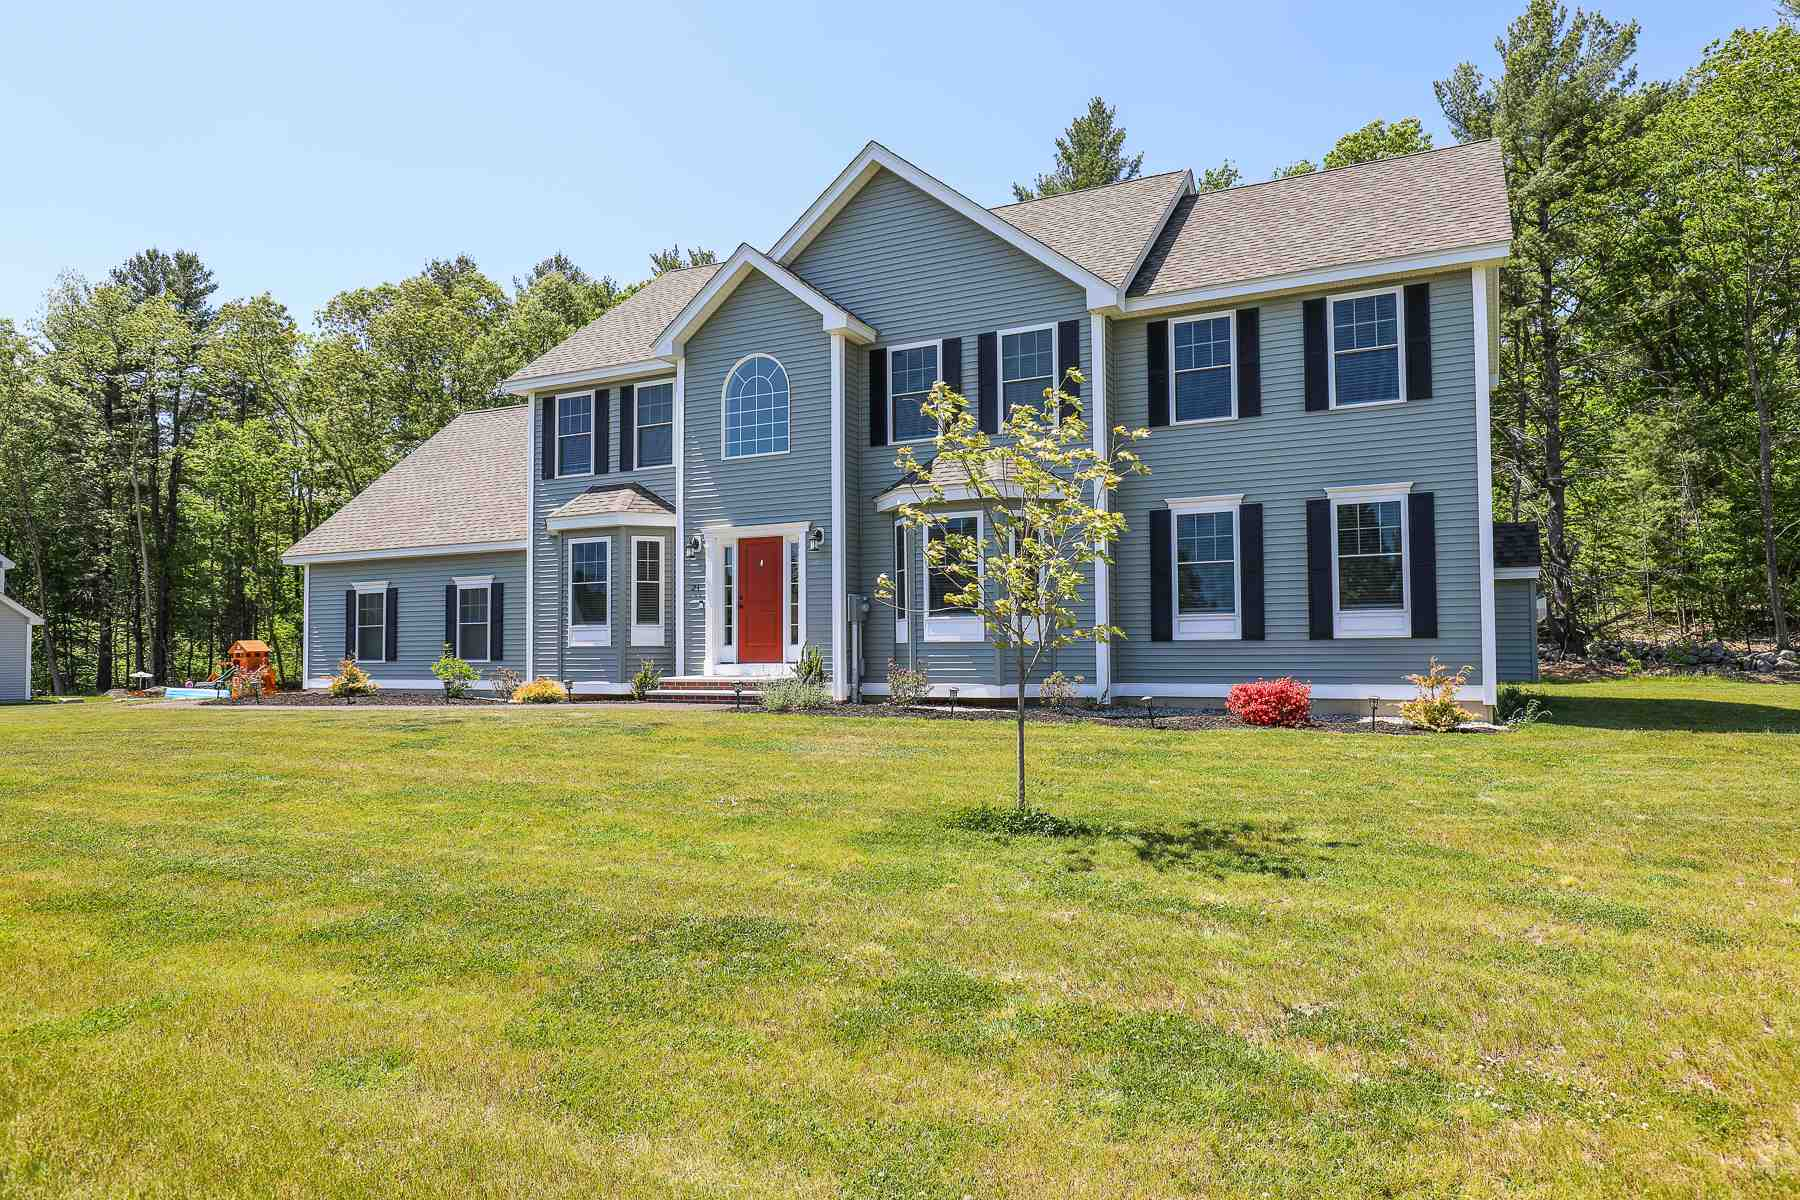 MLS 4808897: 21 Chestnut Lane, Pelham NH